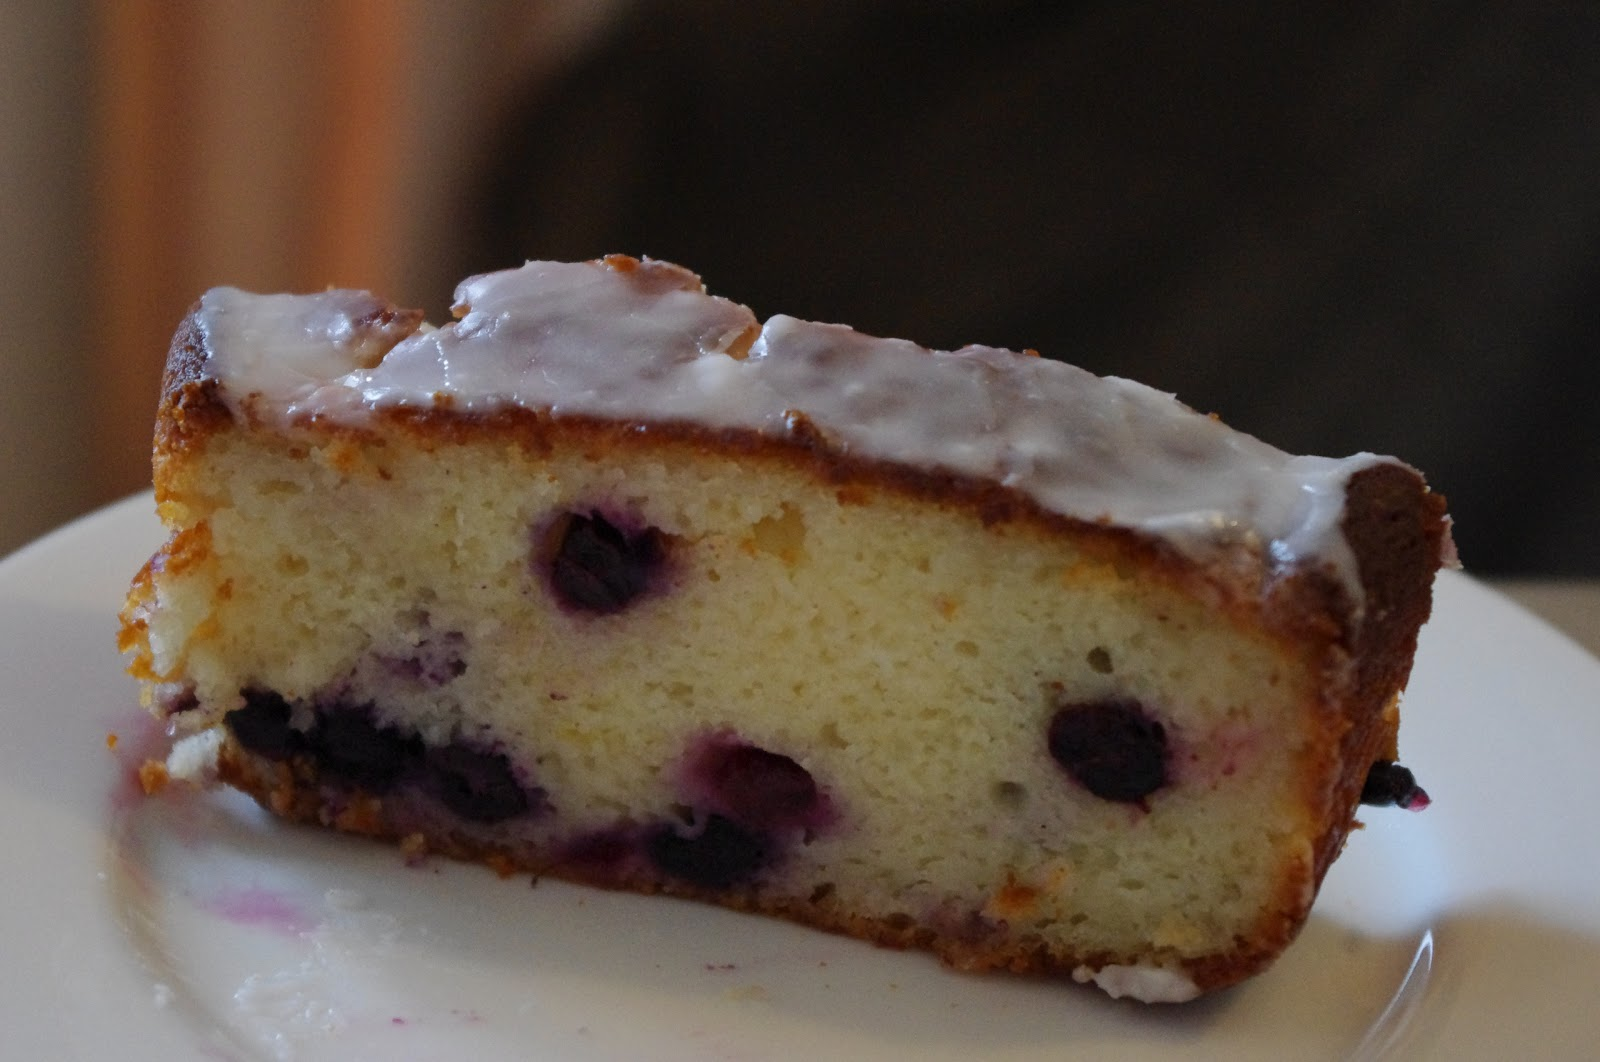 Blueberry and Lemon Greek Yogurt Cake